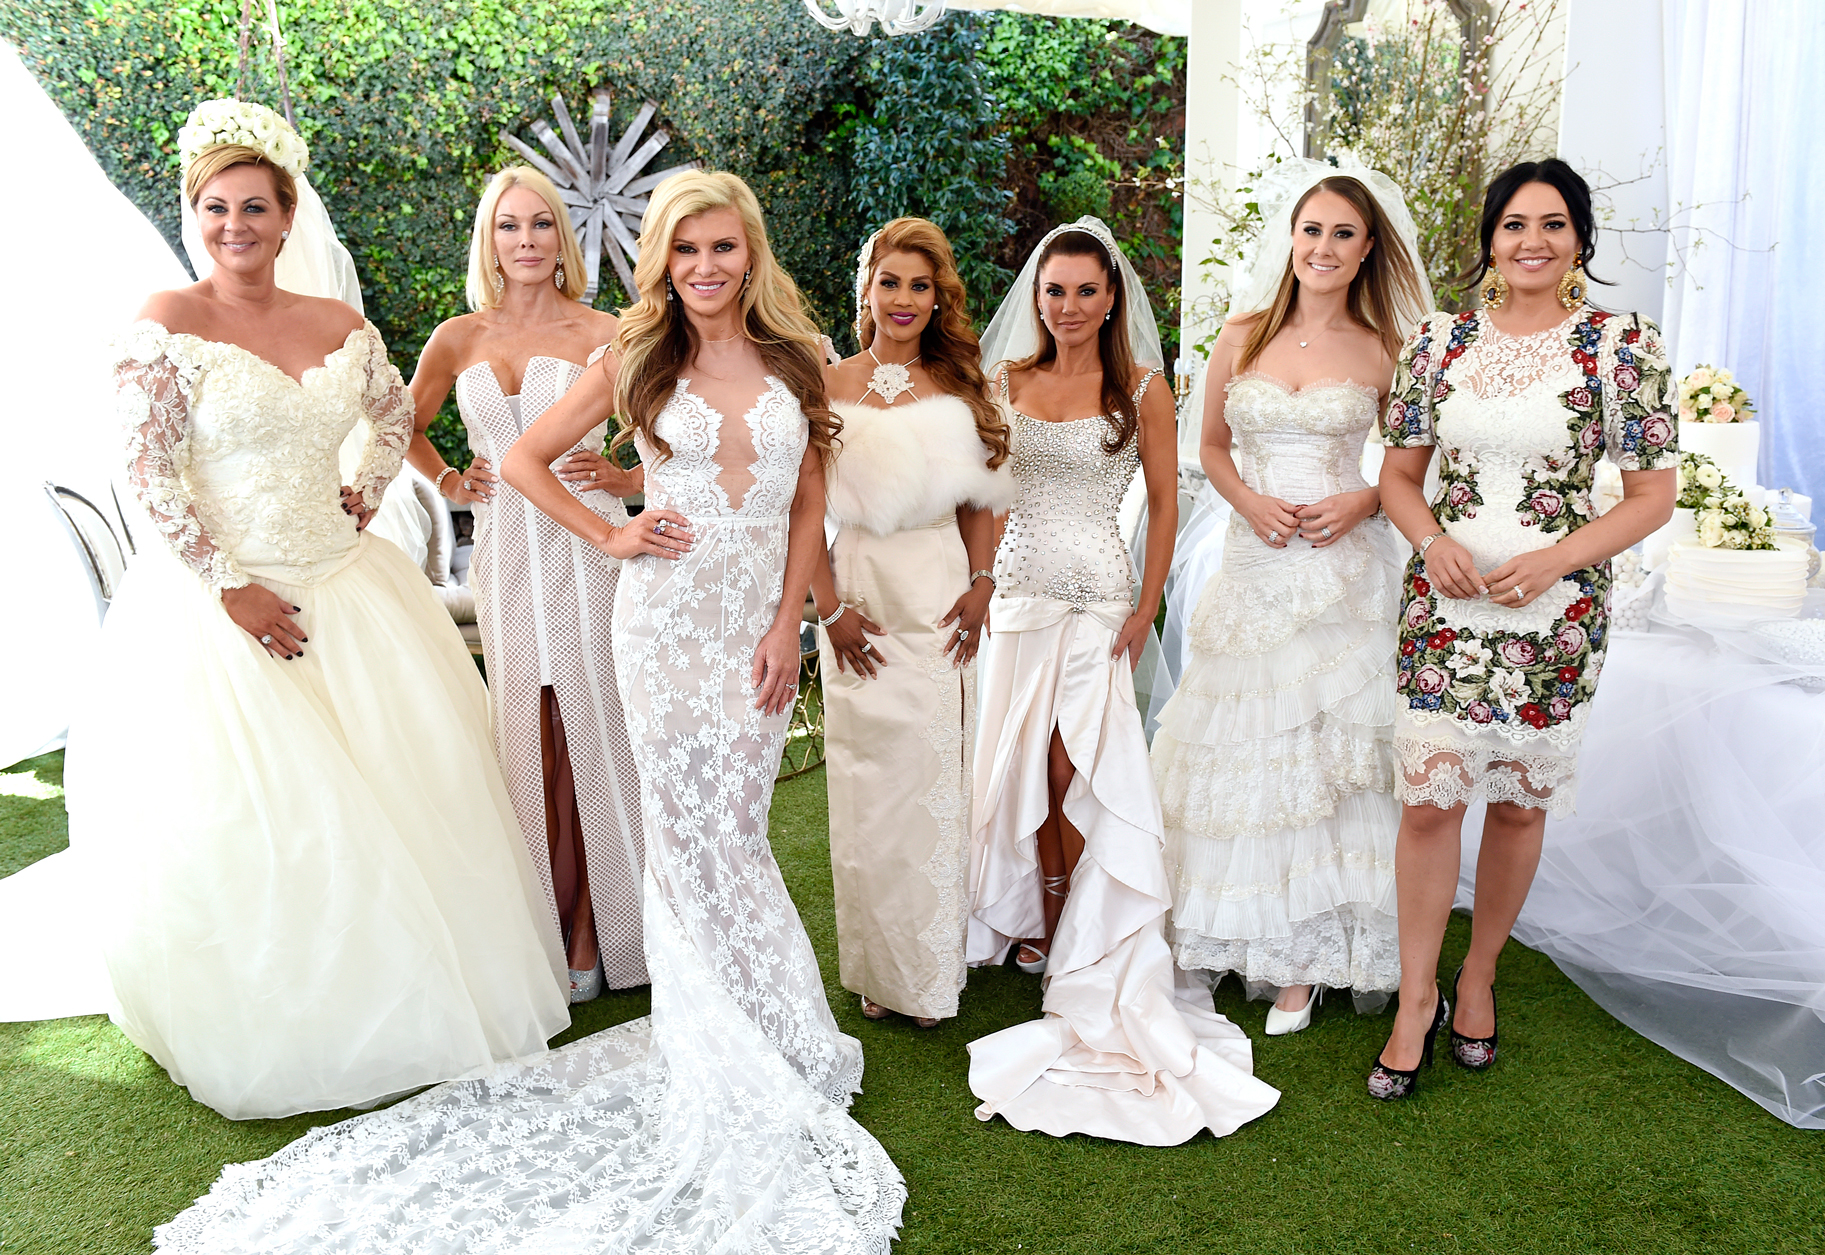 Real Weddings Melbourne: Something Old: The Melbourne Housewives Wear Their Wedding